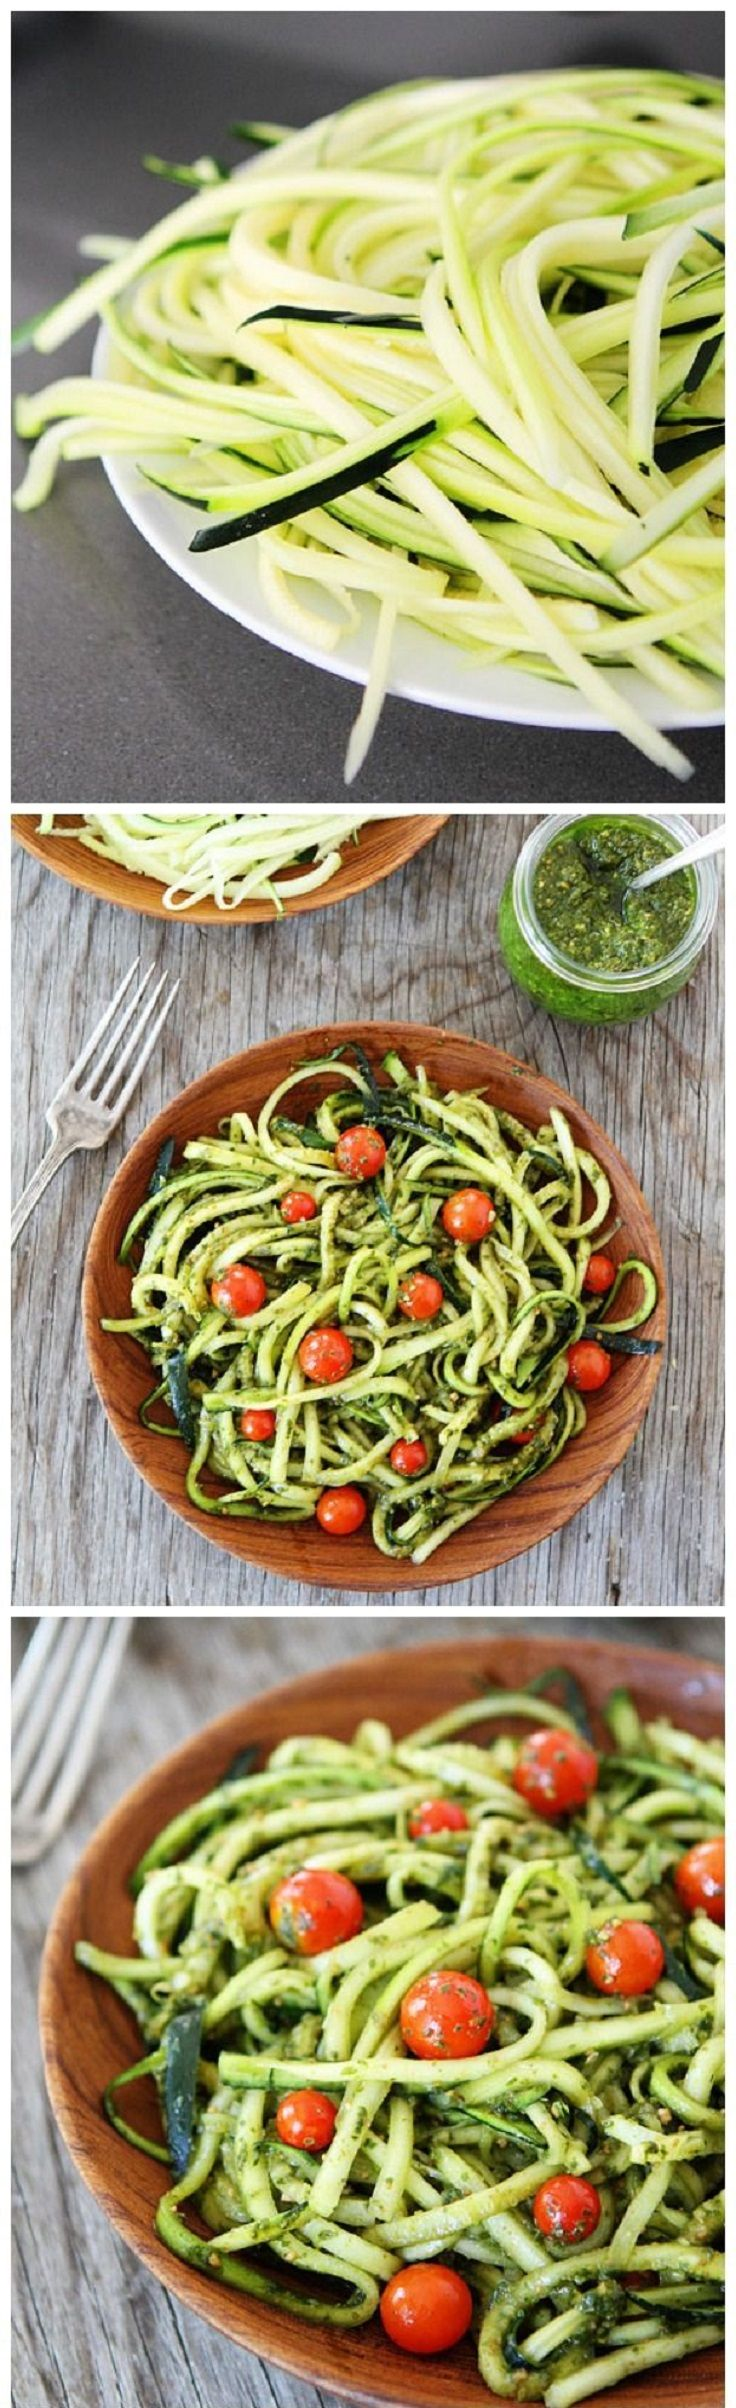 Zucchini Noodles with Pesto - just toss it all in the pot. Looks great and tastes great! :) VB